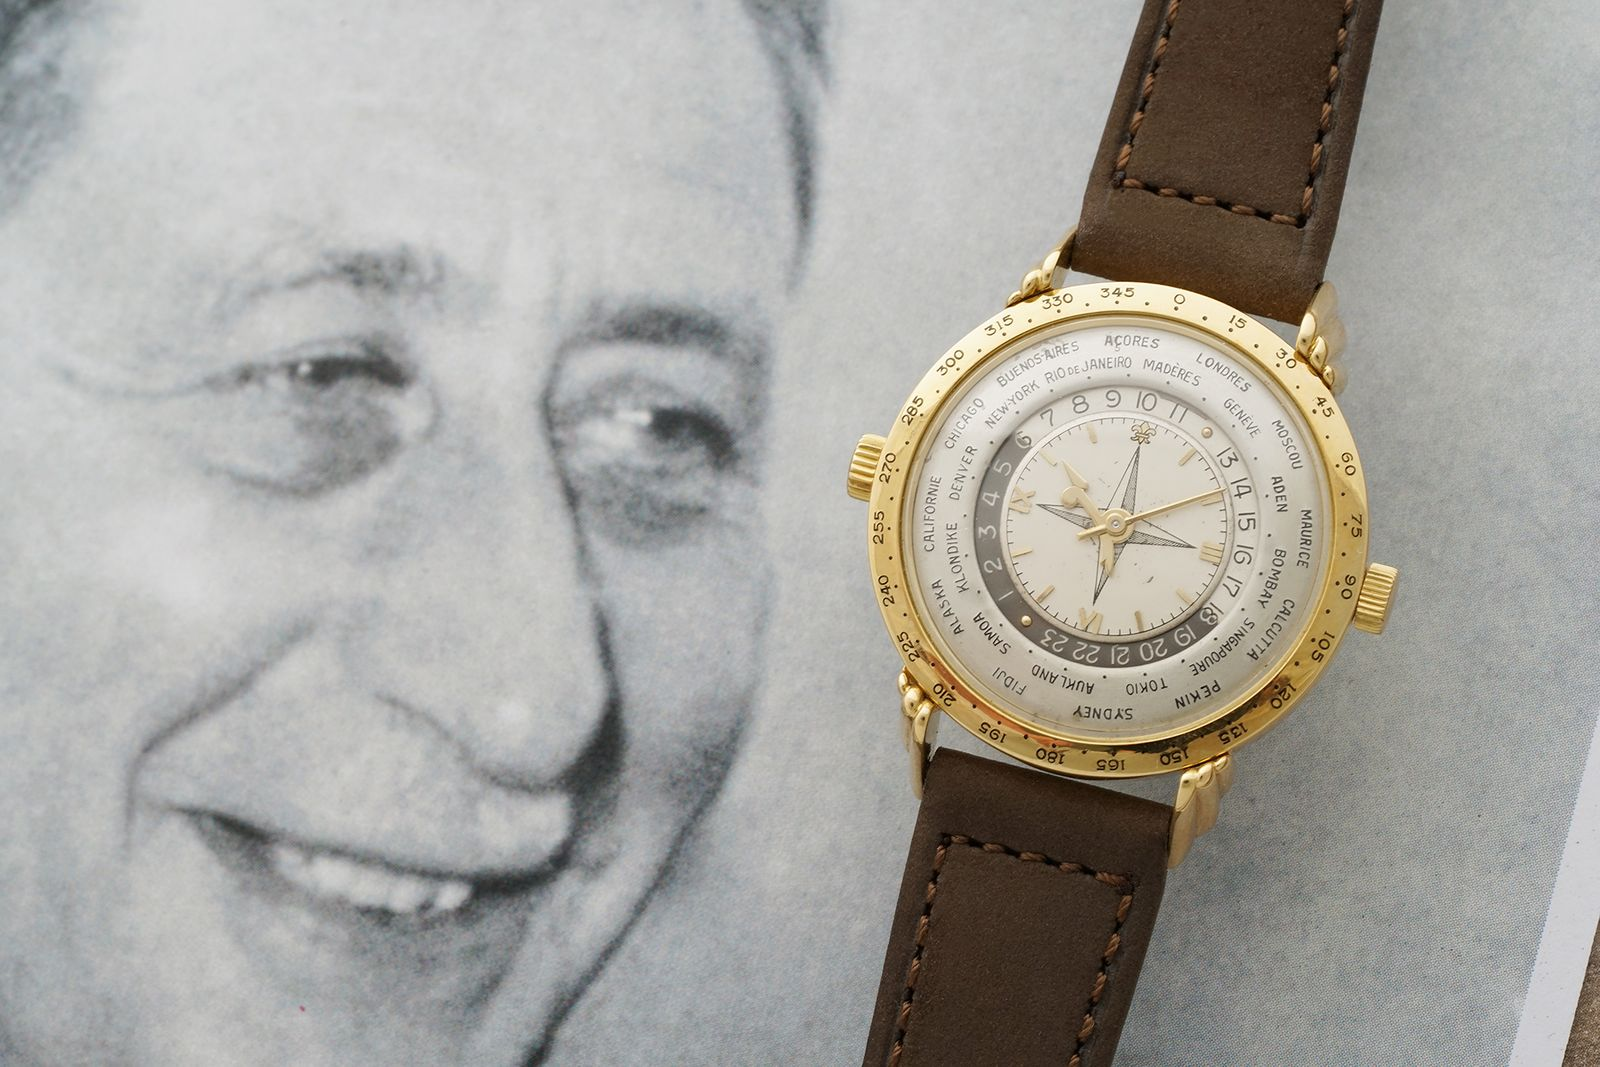 Louis Cottier and his Two Crown Worldtimer wristwatch prototype